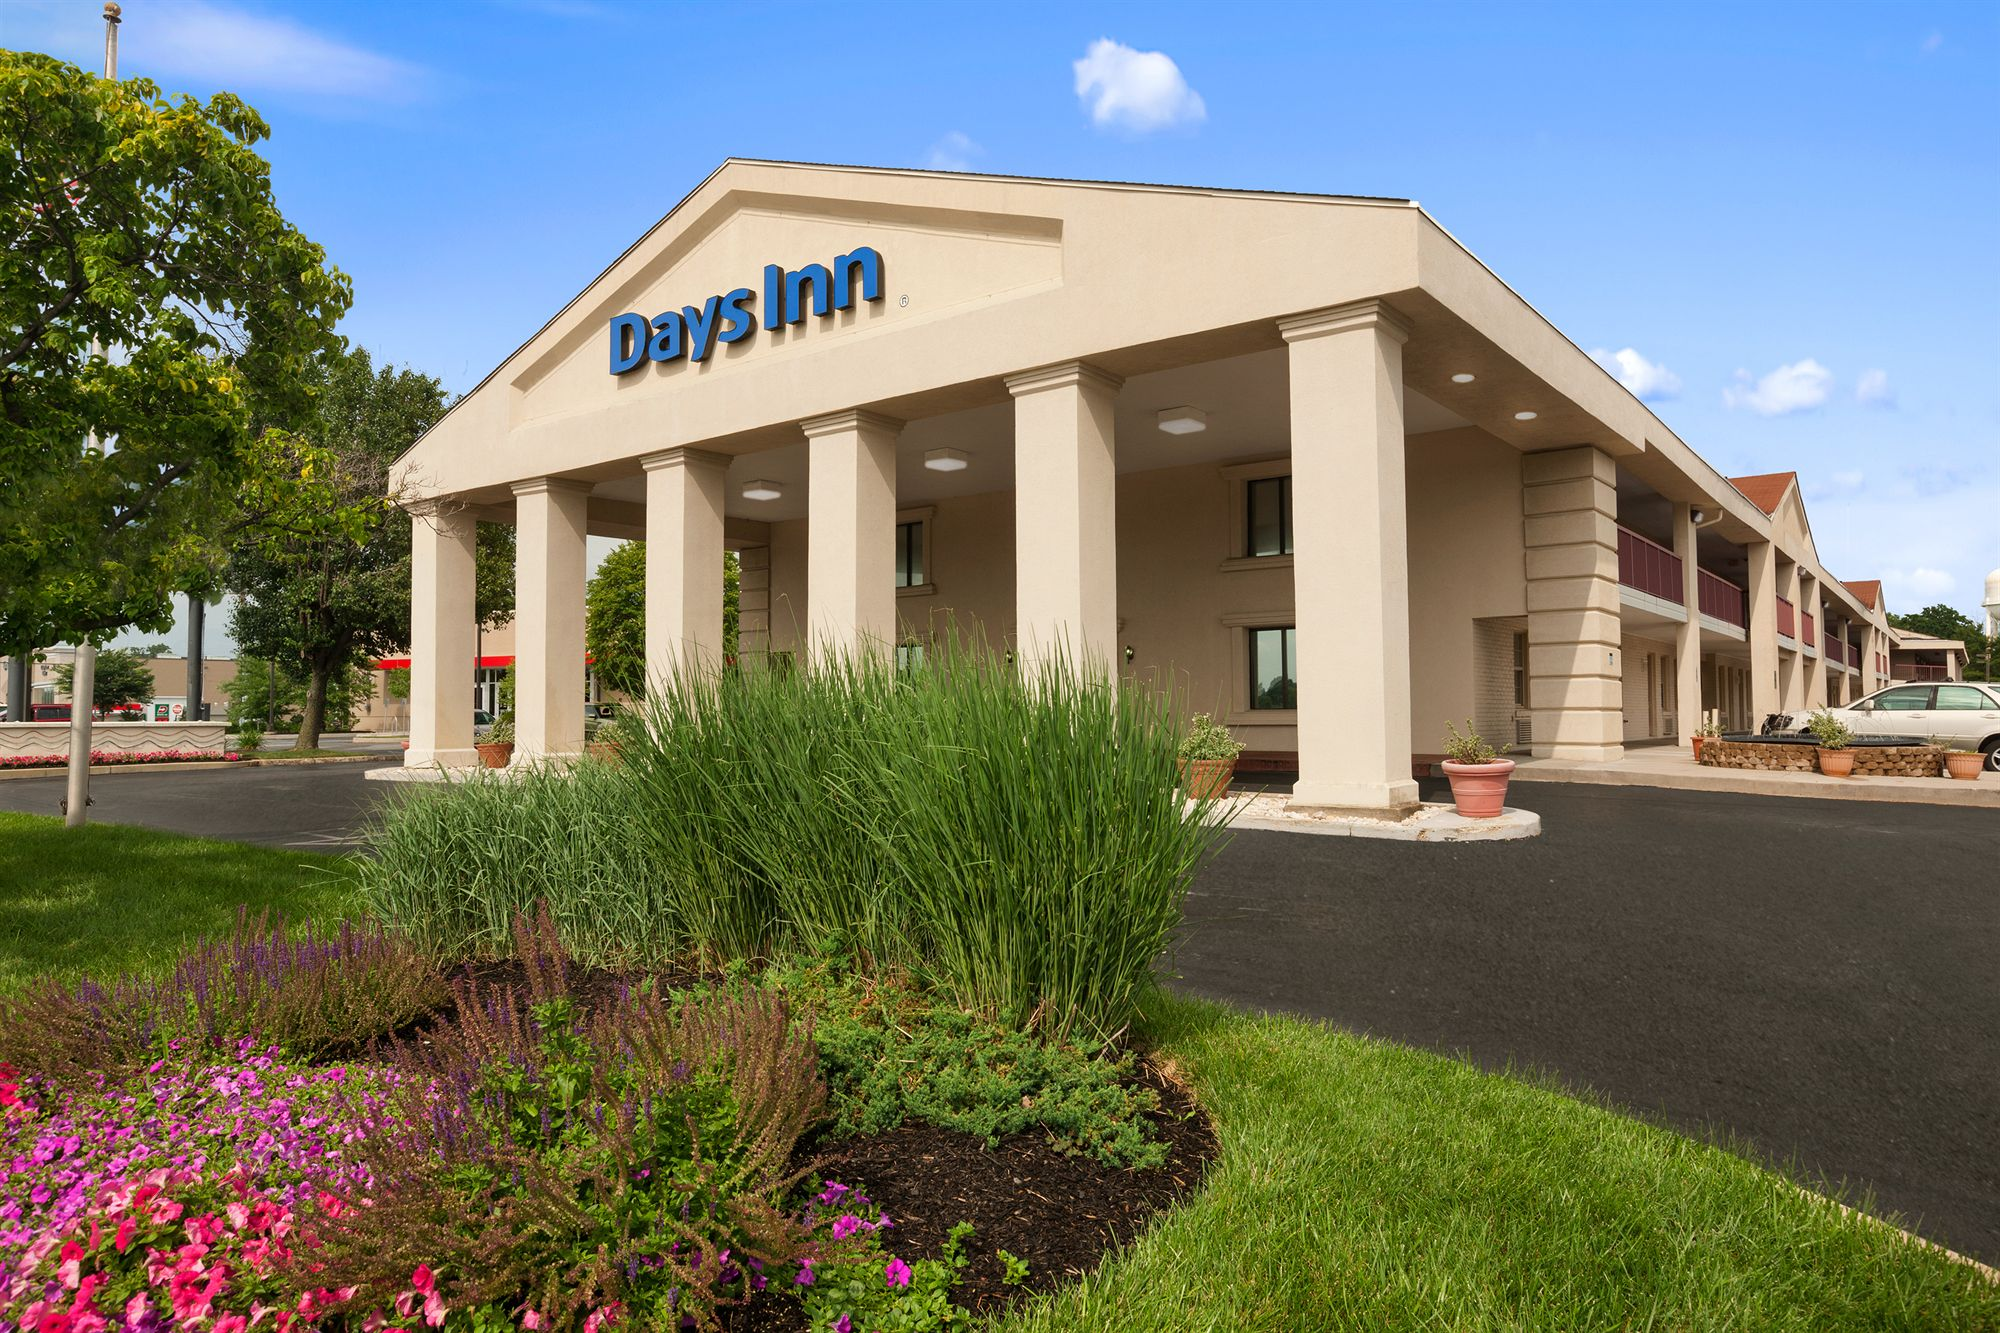 Days Inn Wilmington Newark in Wilmington, DE